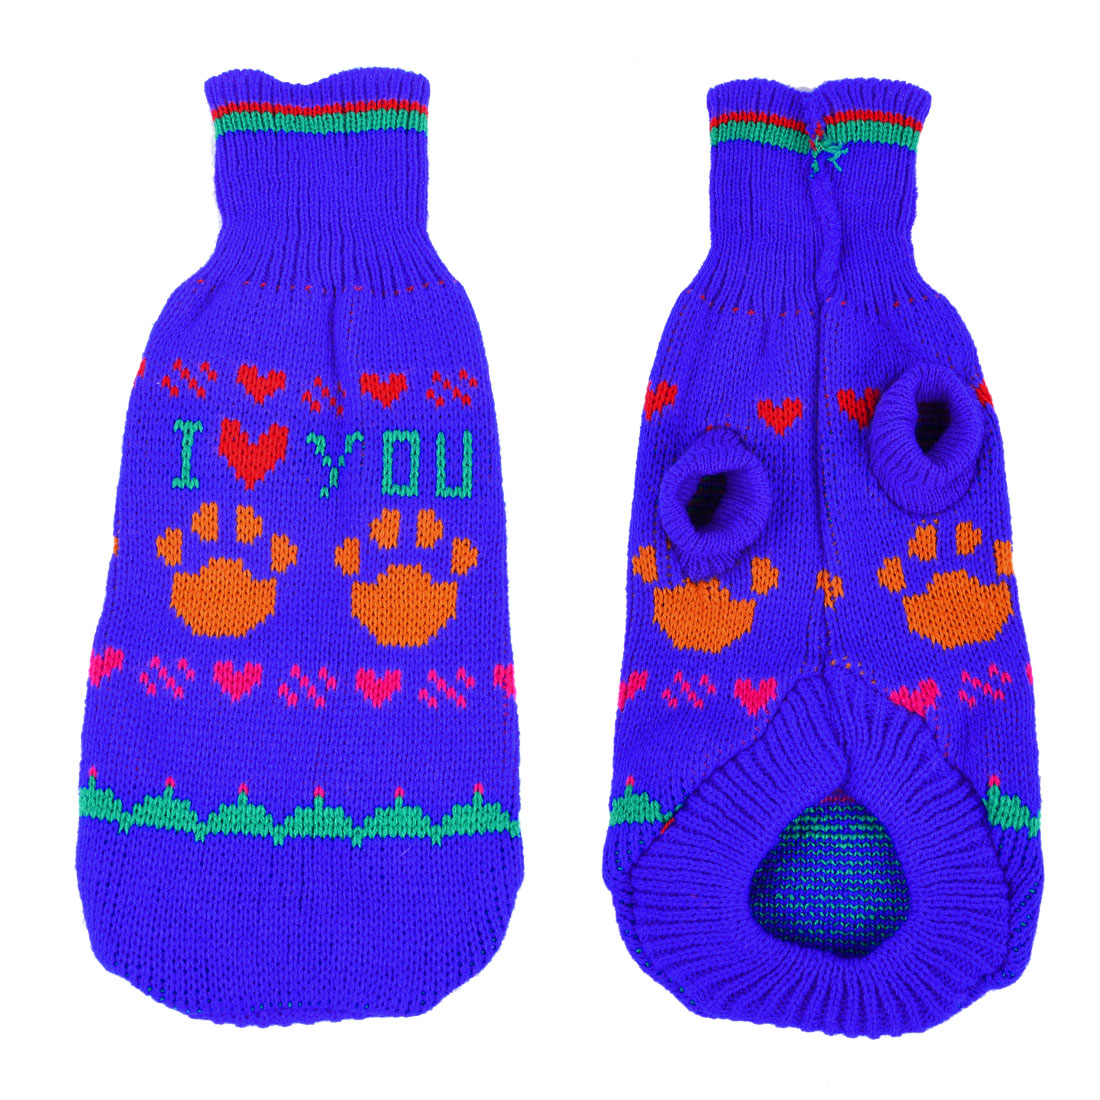 Winter Heart Pattern Hand Knit Yorkie Dog Clothing Pet Puppy Hooded Sweater Blue Size S